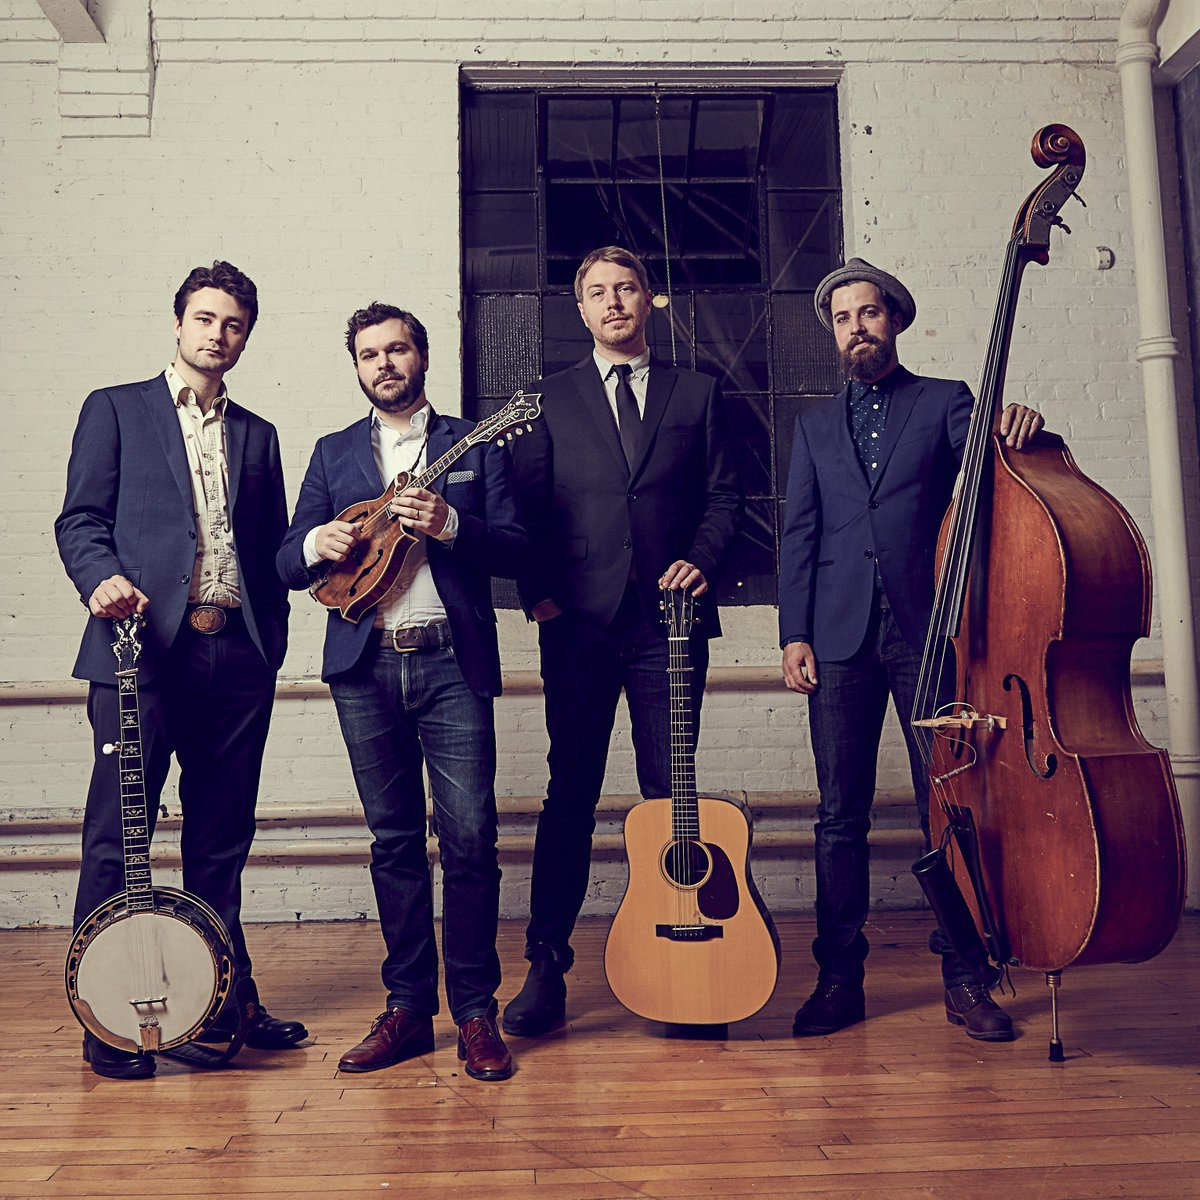 We are looking forward to another amazing show with @slocanramblers performing on January 26th. Don&#39;t miss this excellent #BlueGrass group #infrontenac. Tickets are selling fast so give us a call 6132792198<br>http://pic.twitter.com/qXoNaxmgok